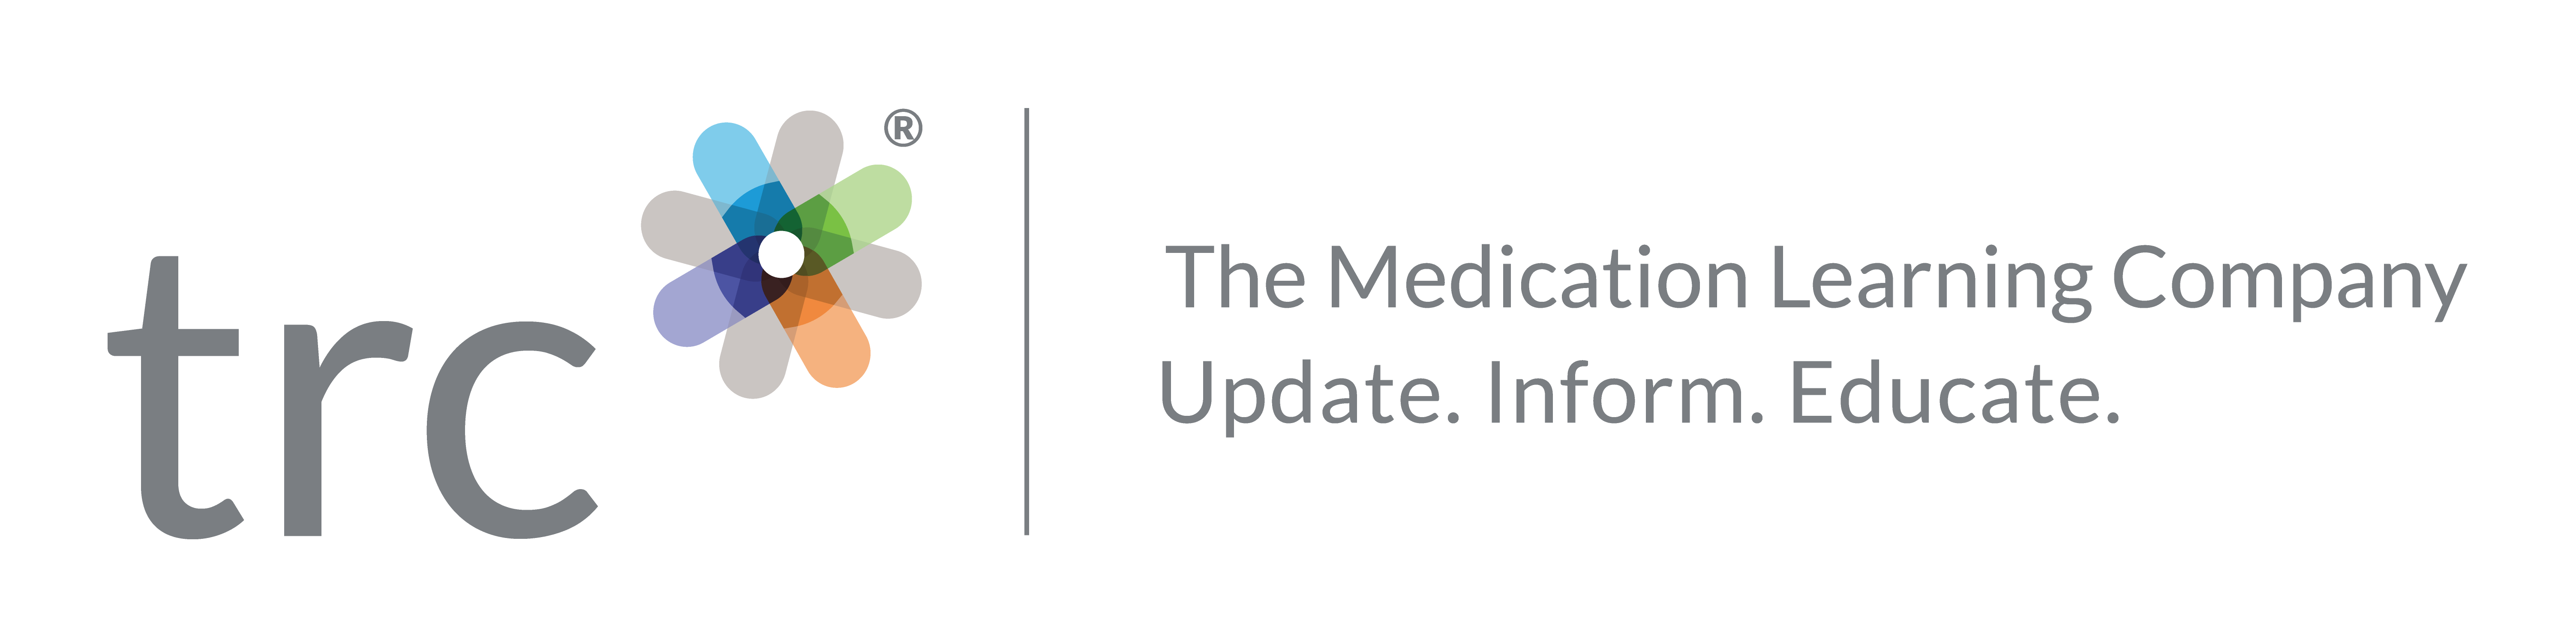 TRC   The Medication Learning Company - Update. Inform. Educate.